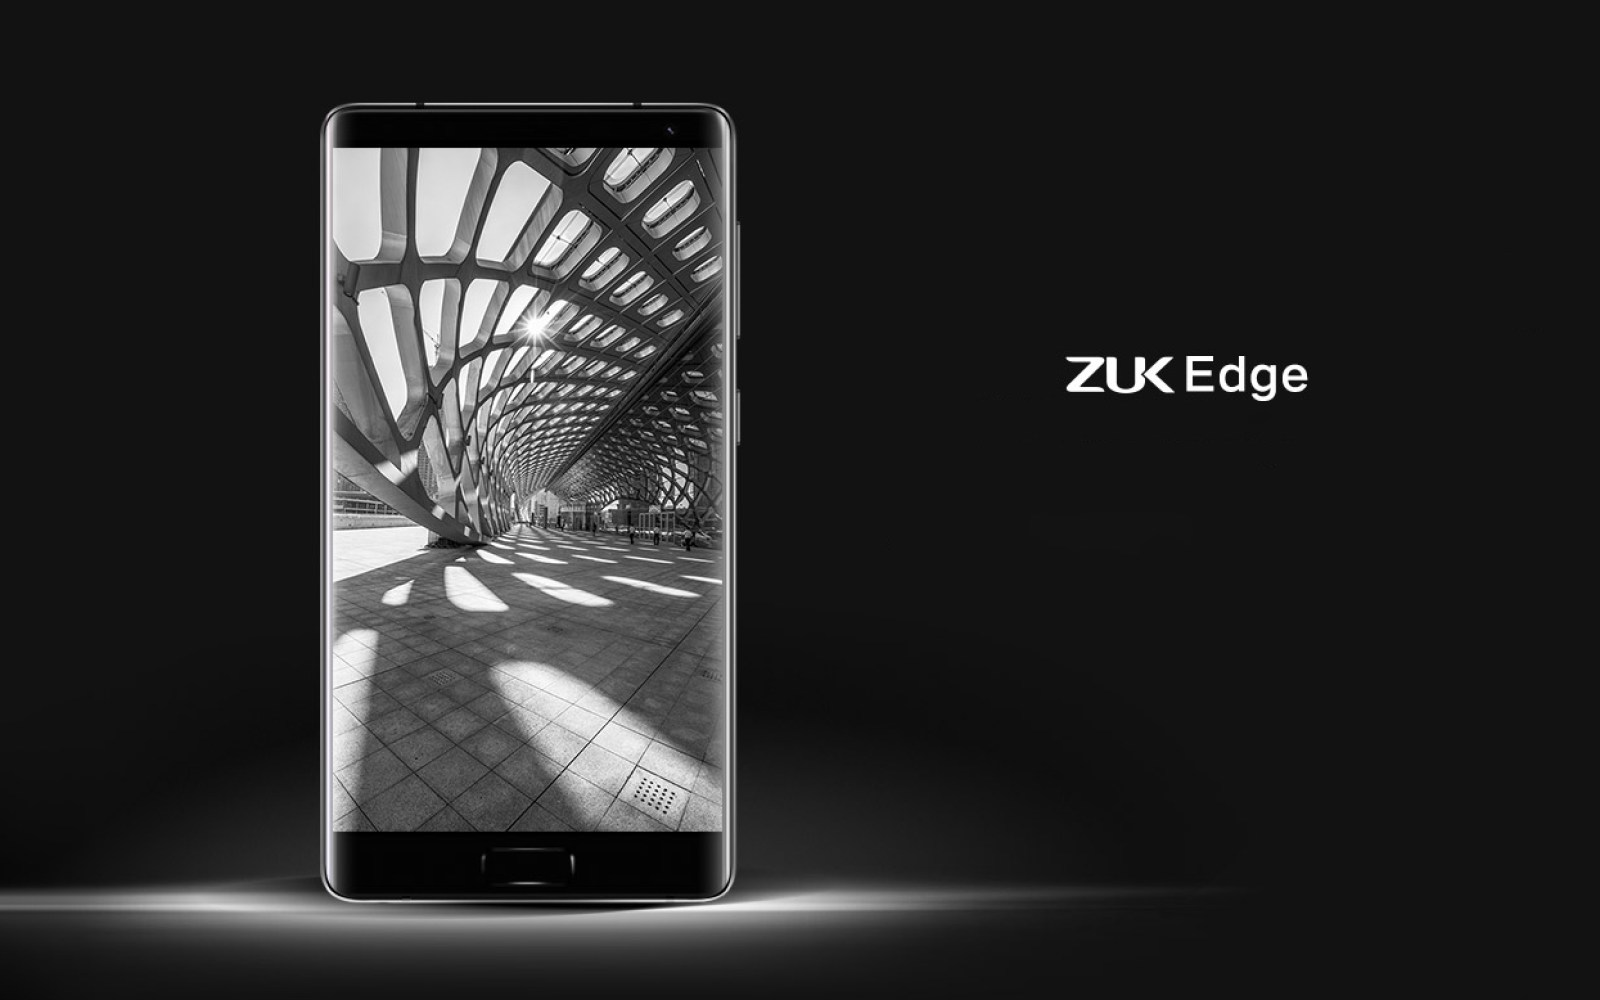 Lenovo launches new Zuk Edge smartphone with almost borderless design, Android Nougat, more